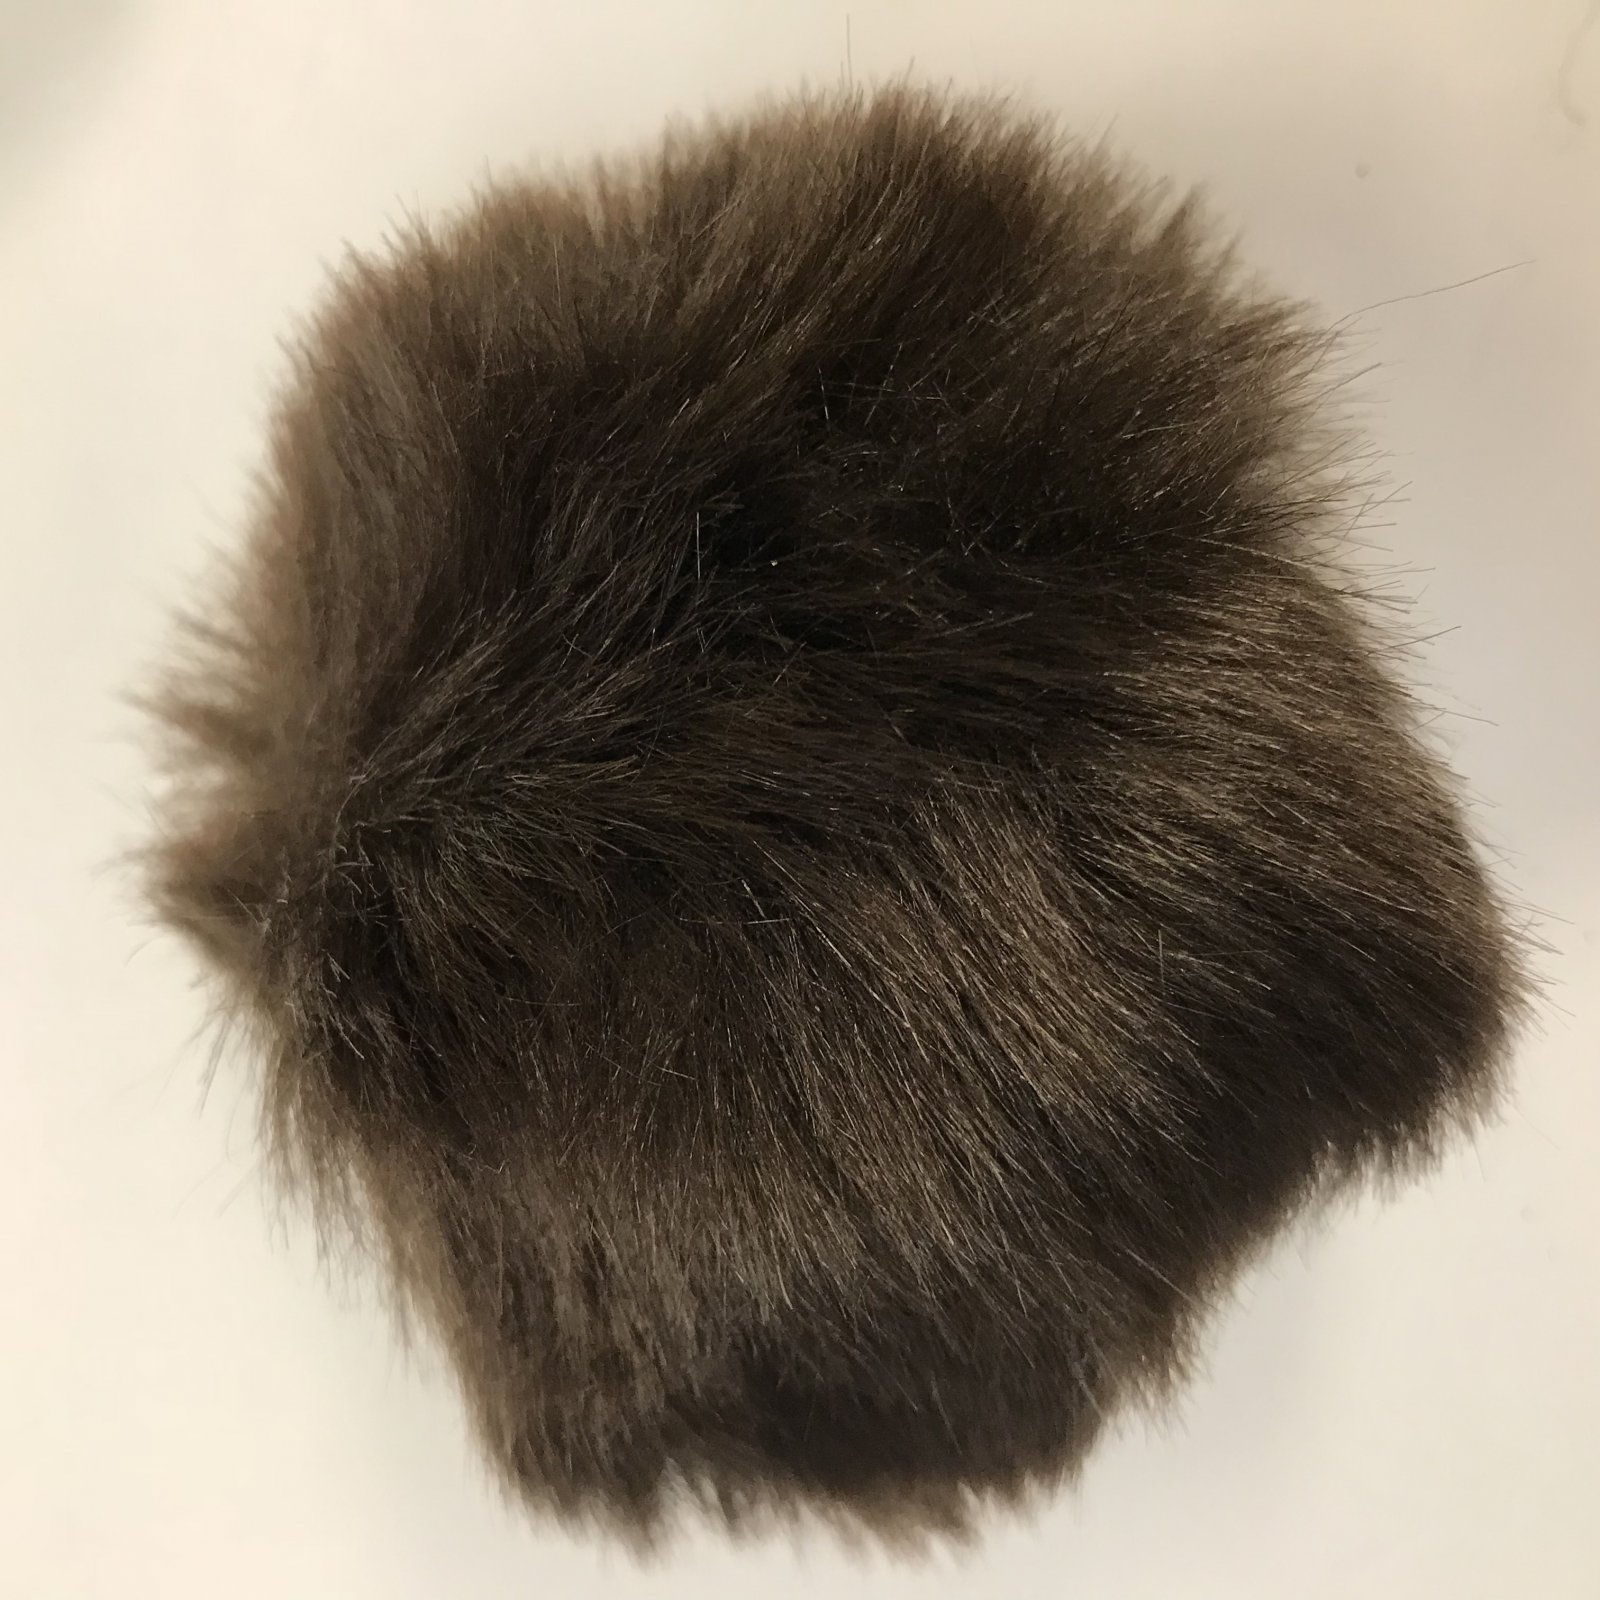 Faux Fur Poms 9 cm - Coffee Bean